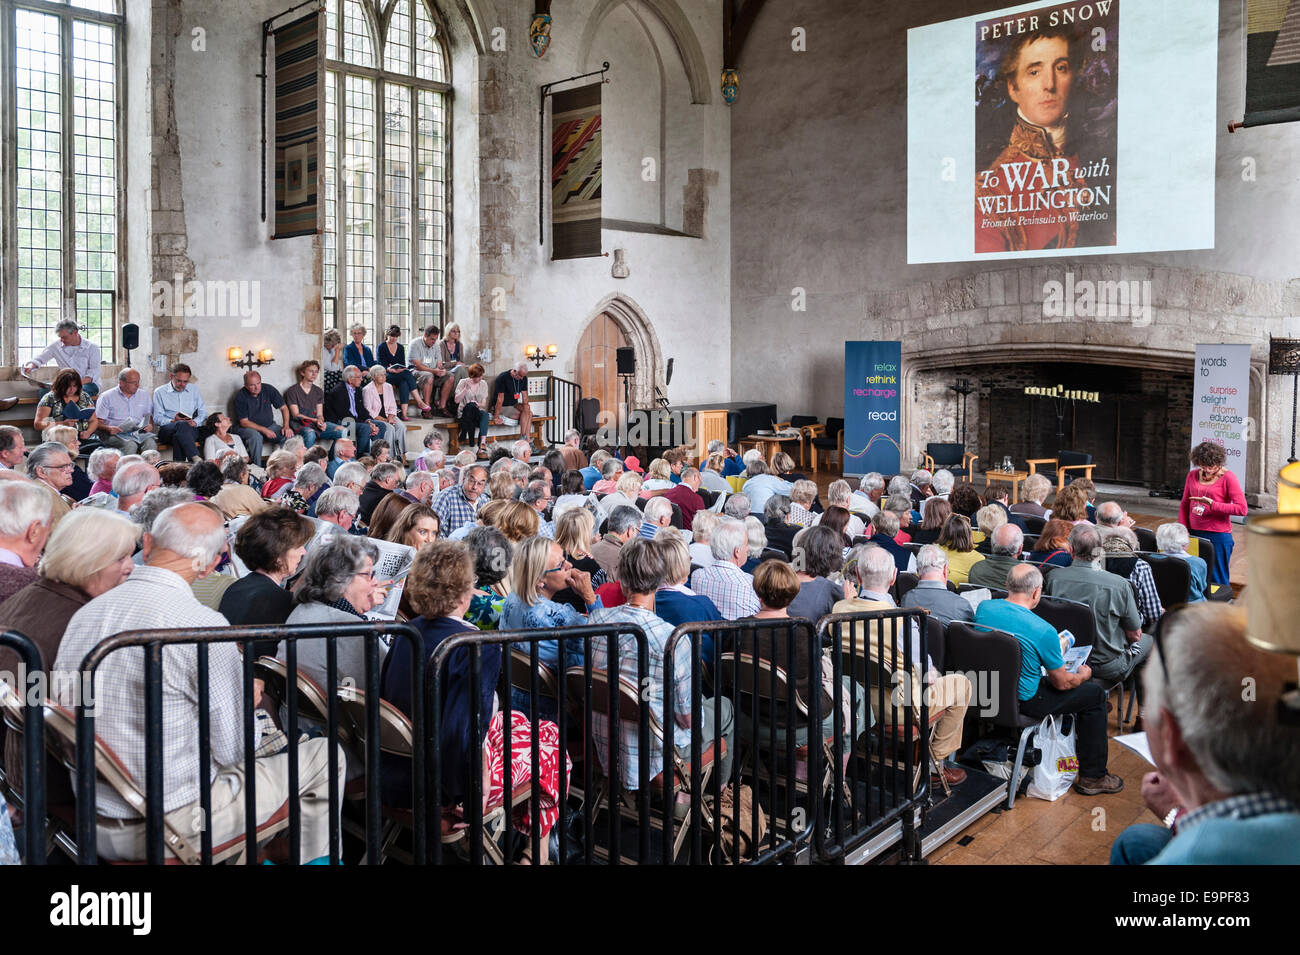 Dartington Hall, Totnes, Devon, UK. Festival goers in the packed Great Hall at the Ways With Words literary festival - Stock Image